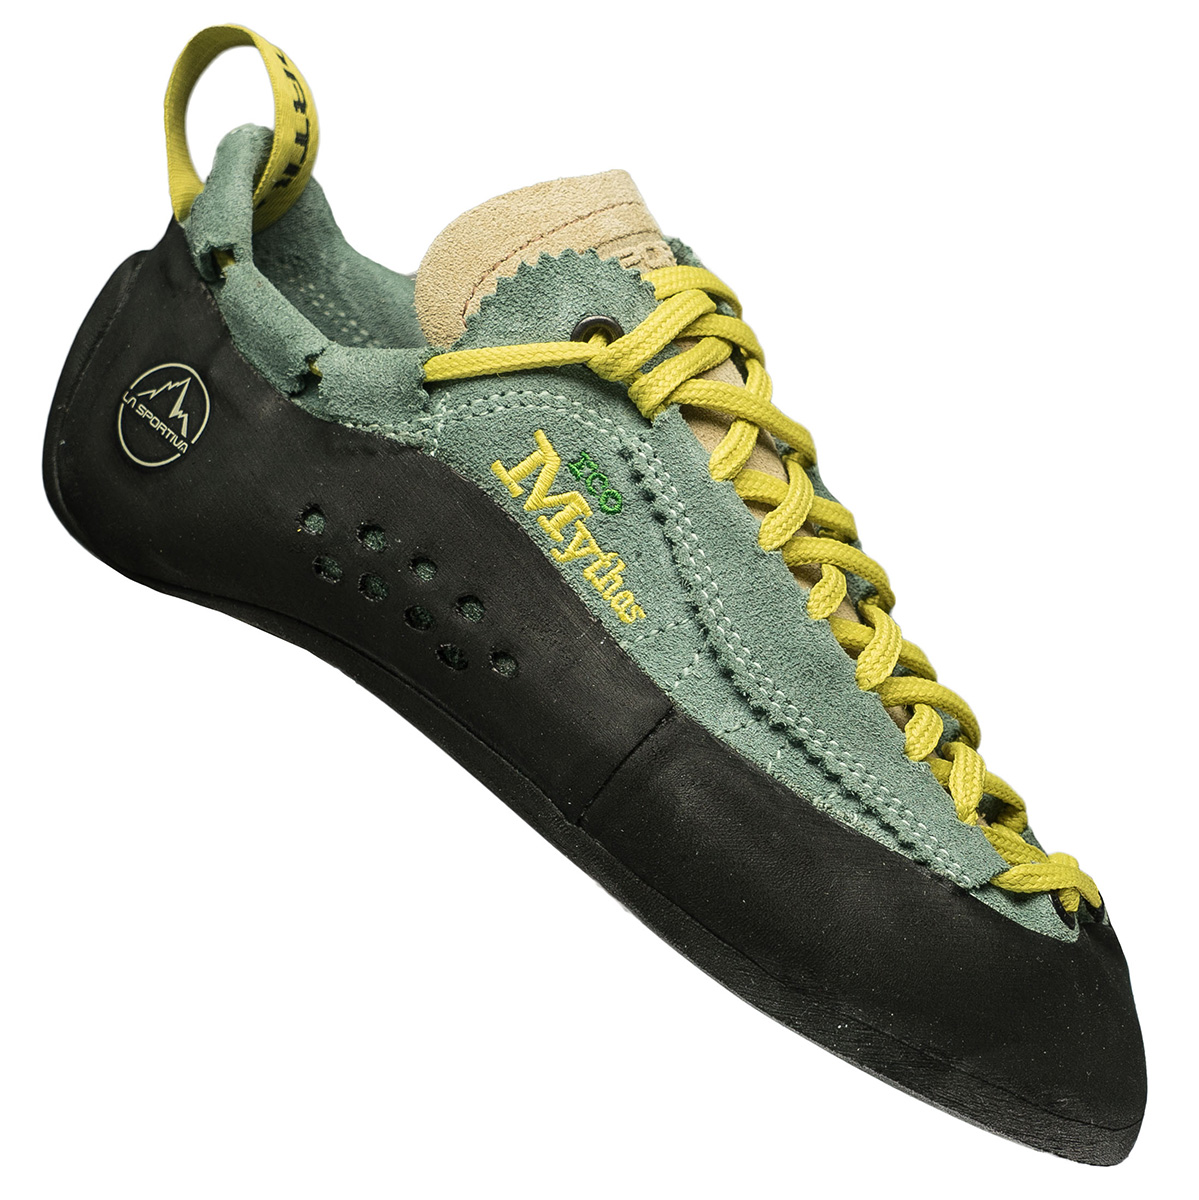 mythos eco eco friendly climbing shoe. Black Bedroom Furniture Sets. Home Design Ideas